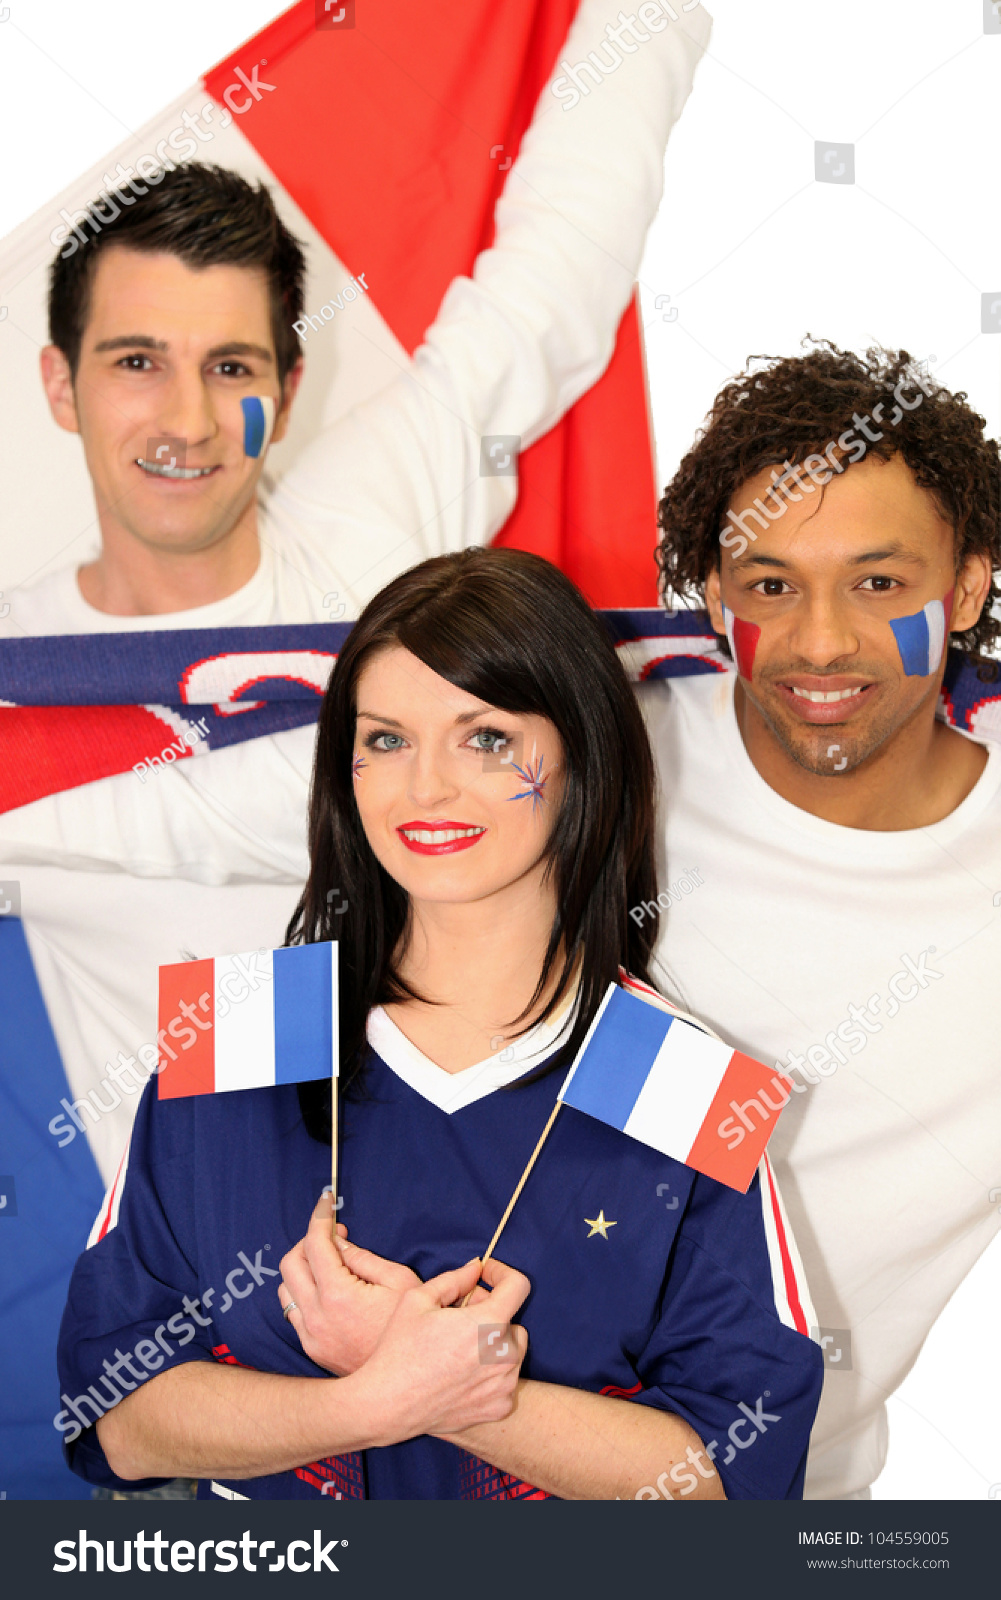 French People Students Lycee Charlemagne Stock Photos: Three French People Supporting Their National Team Stock